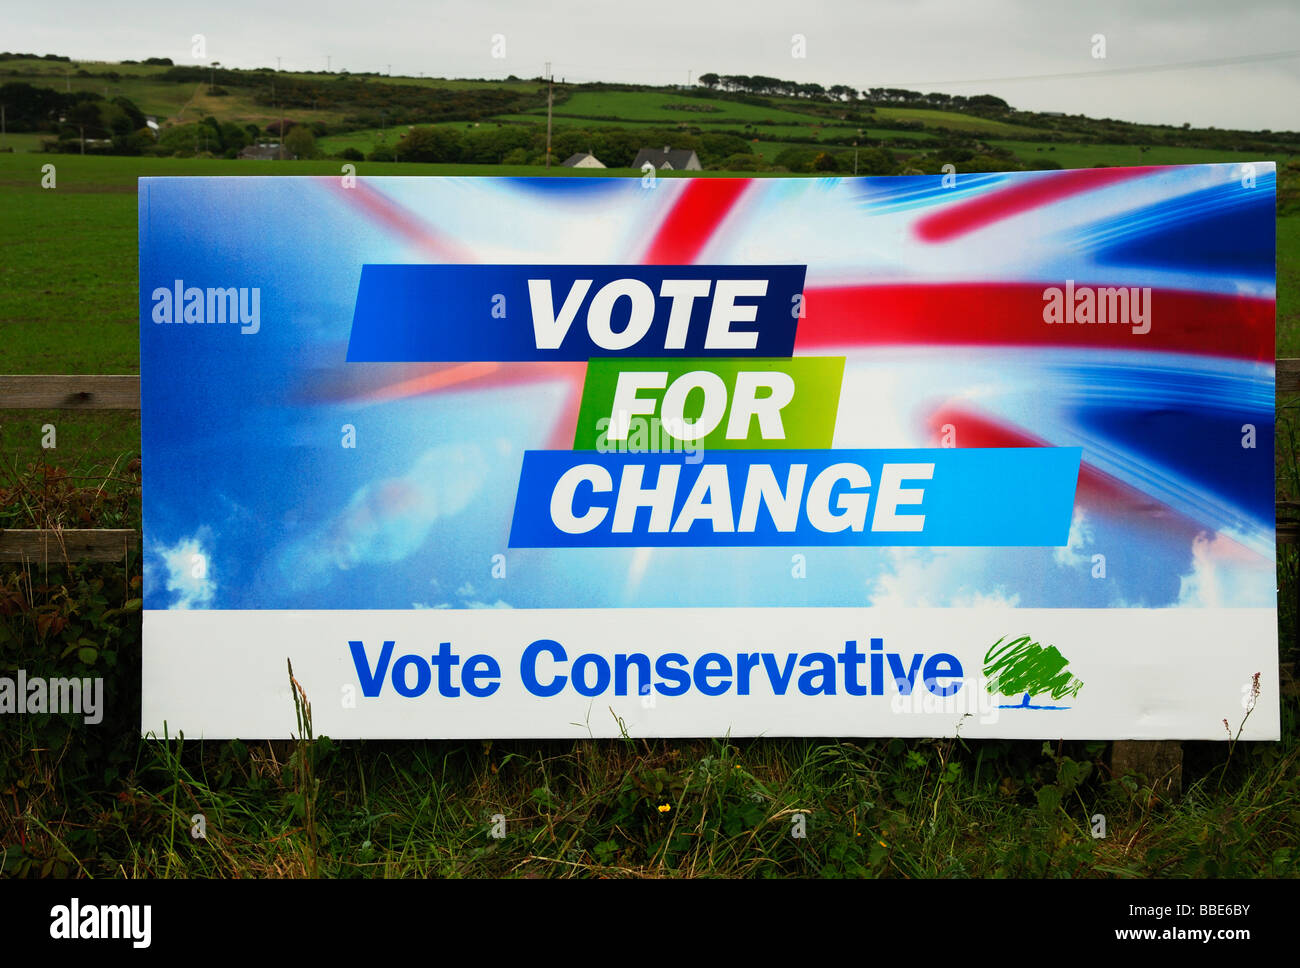 a conservative party advertising poster in rural cornwall,uk - Stock Image